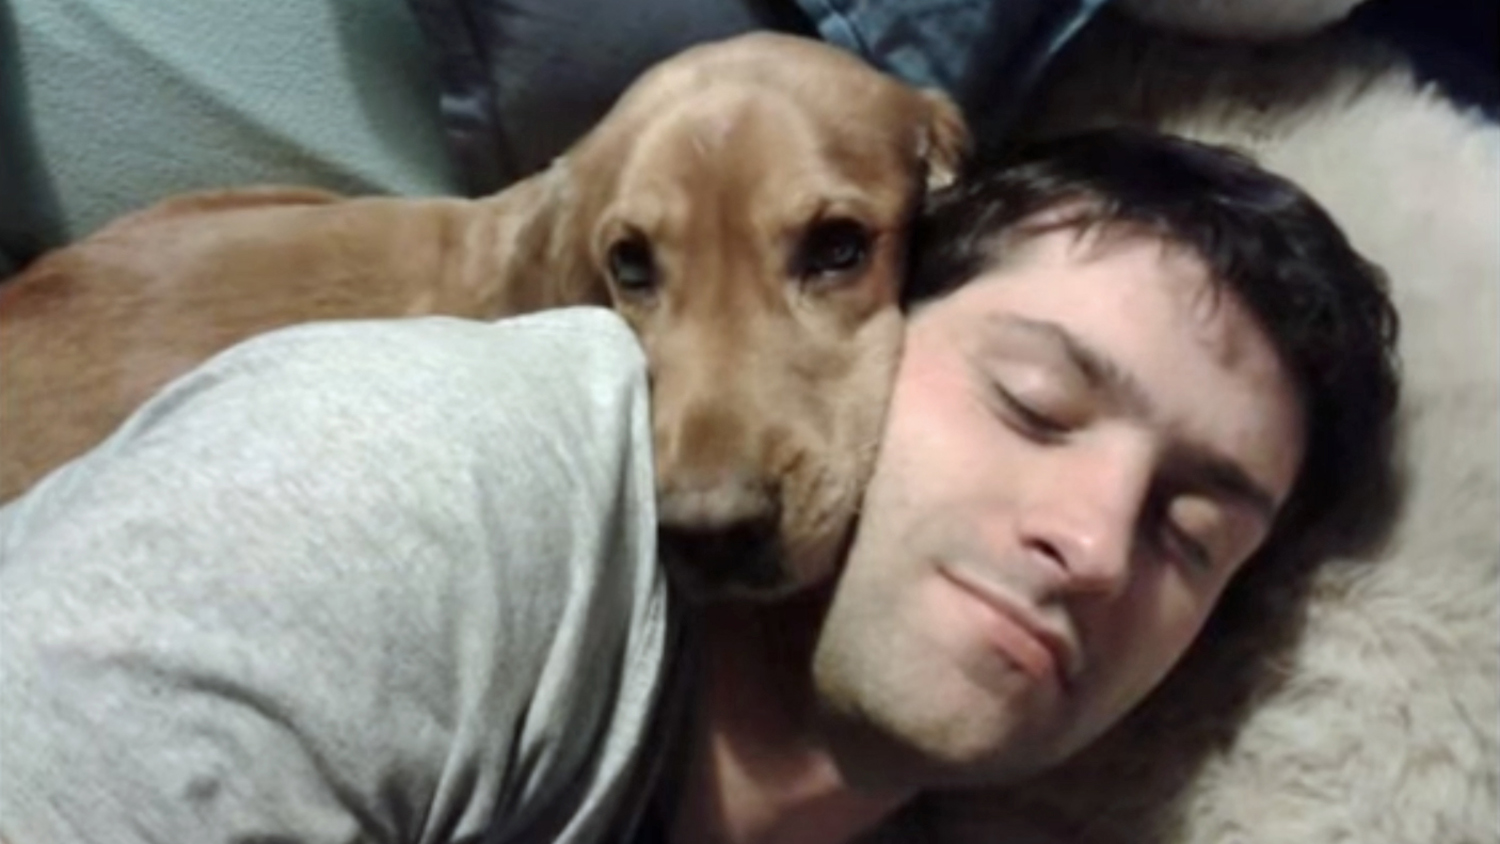 Alex snuggling with his dog